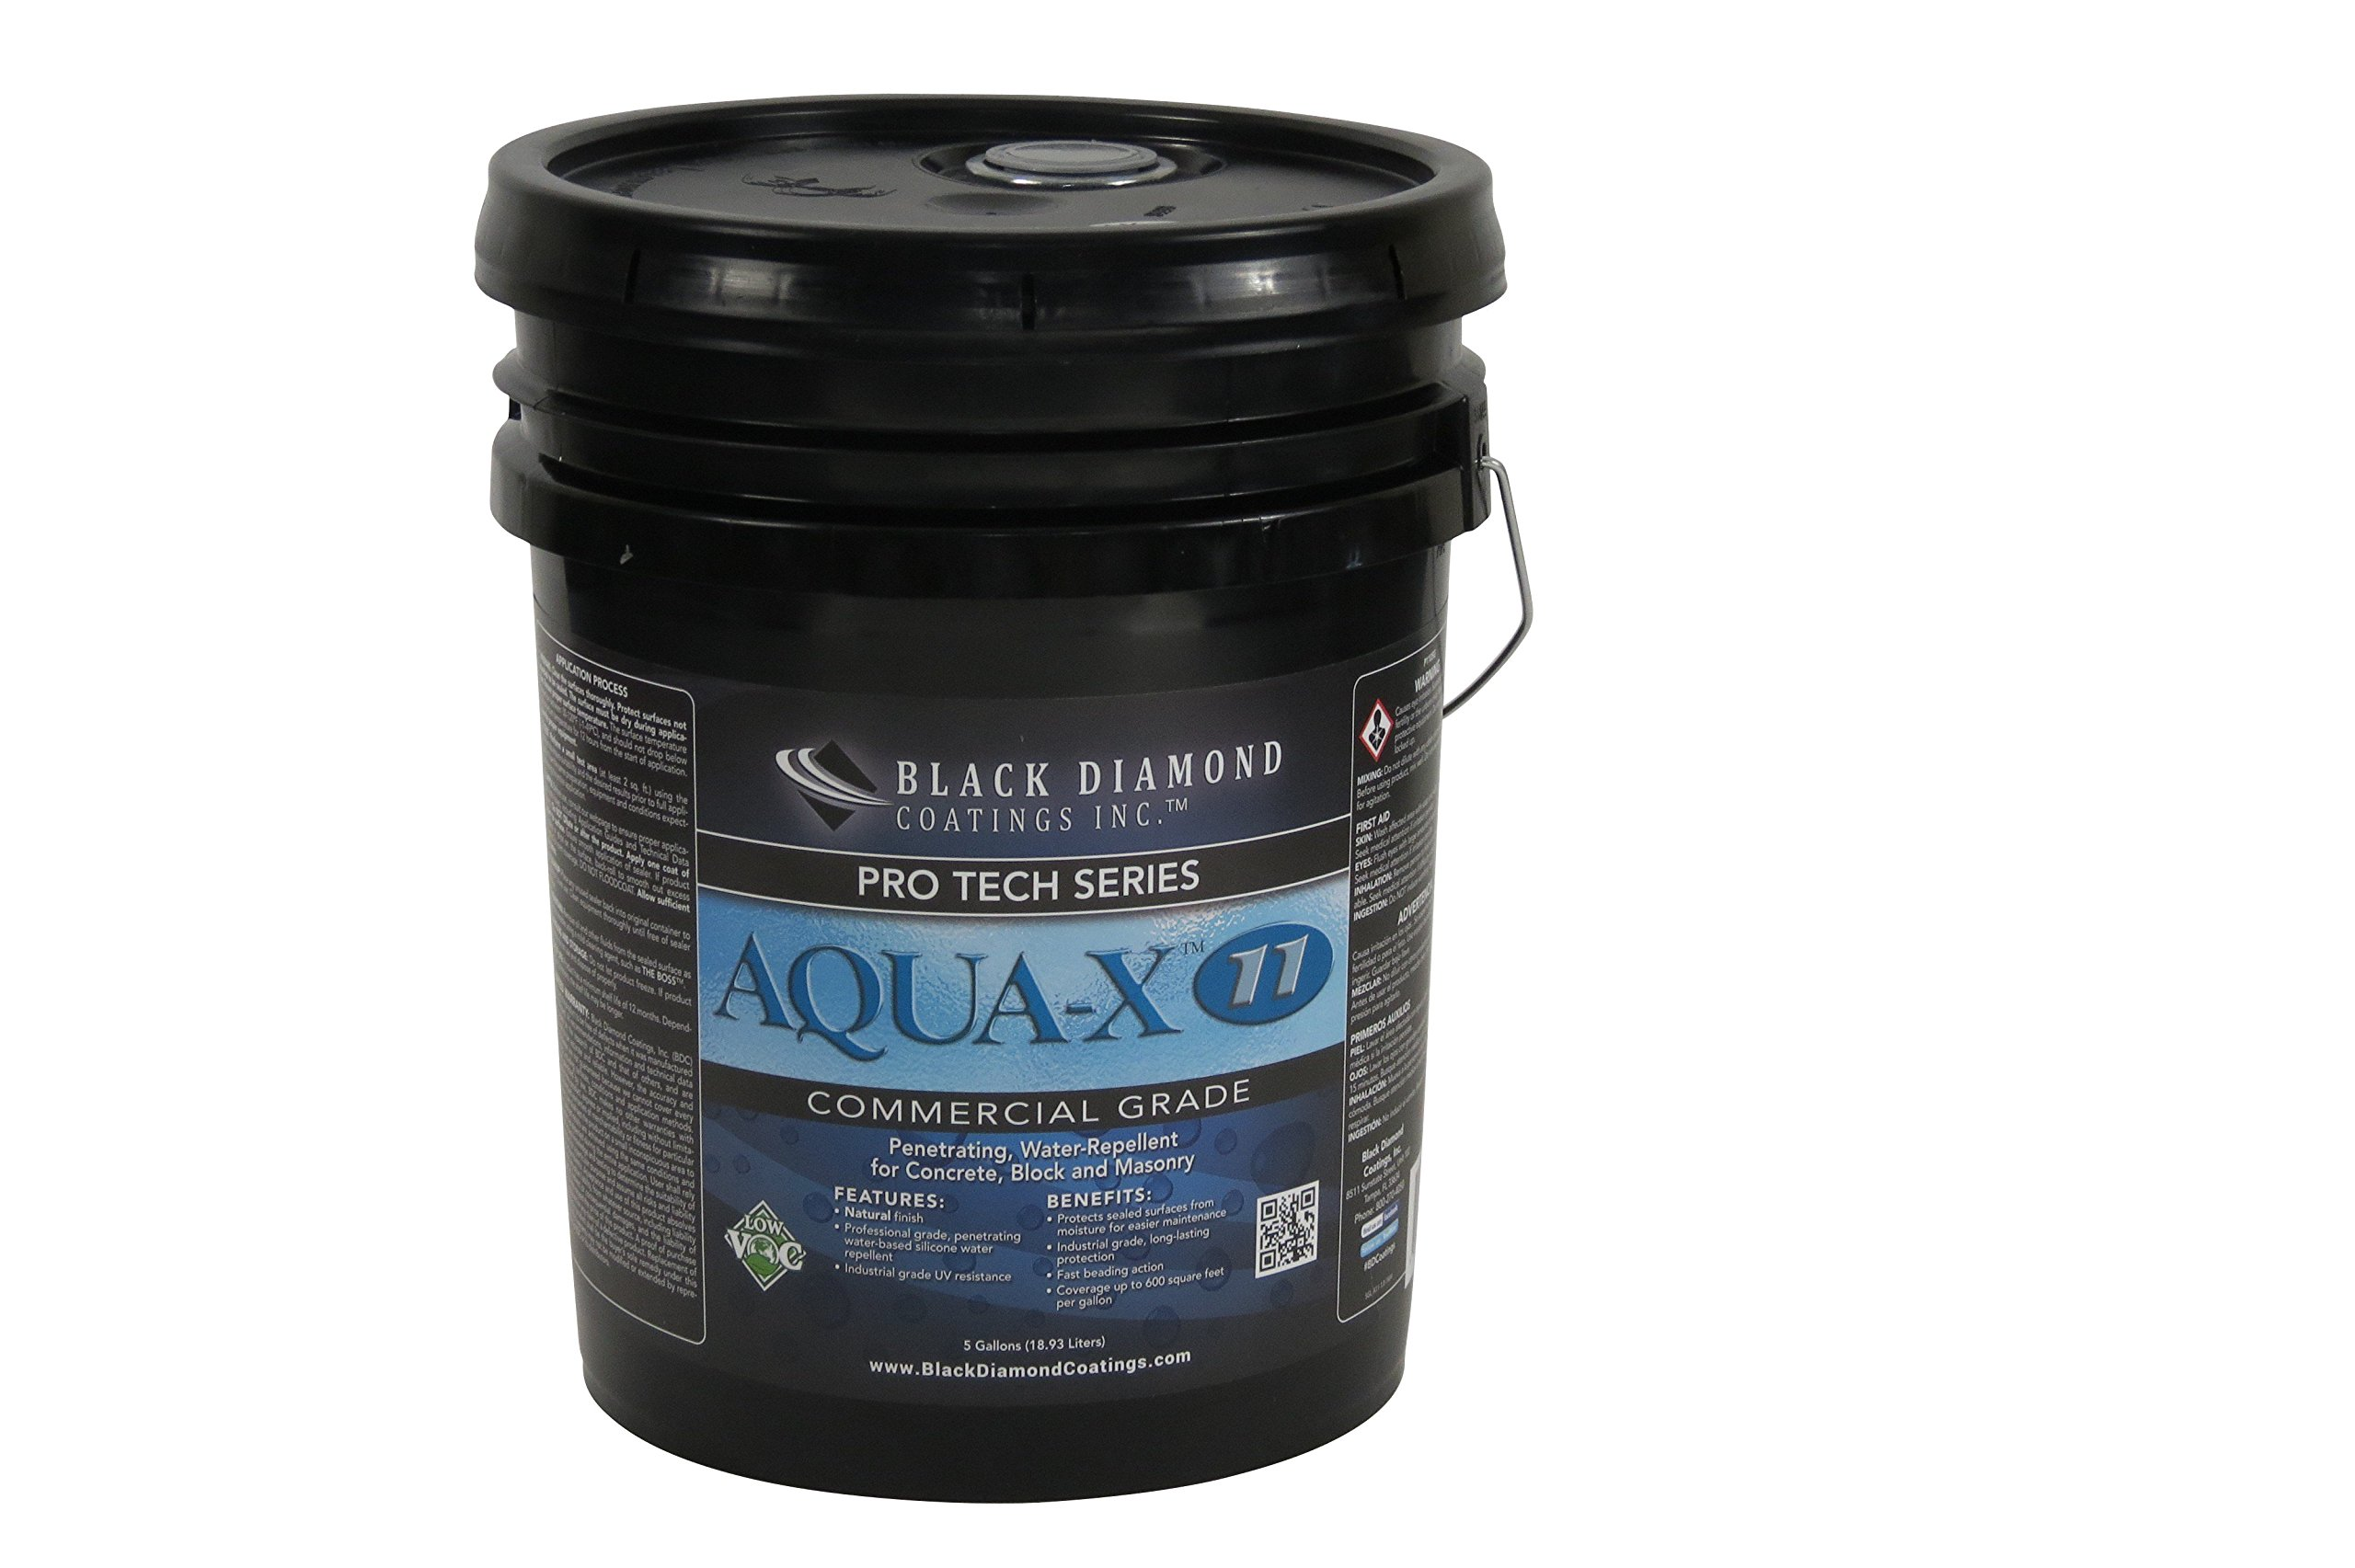 AQUA-X 11 Commercial Grade Concrete Sealer and Water Repellant All-in-One.